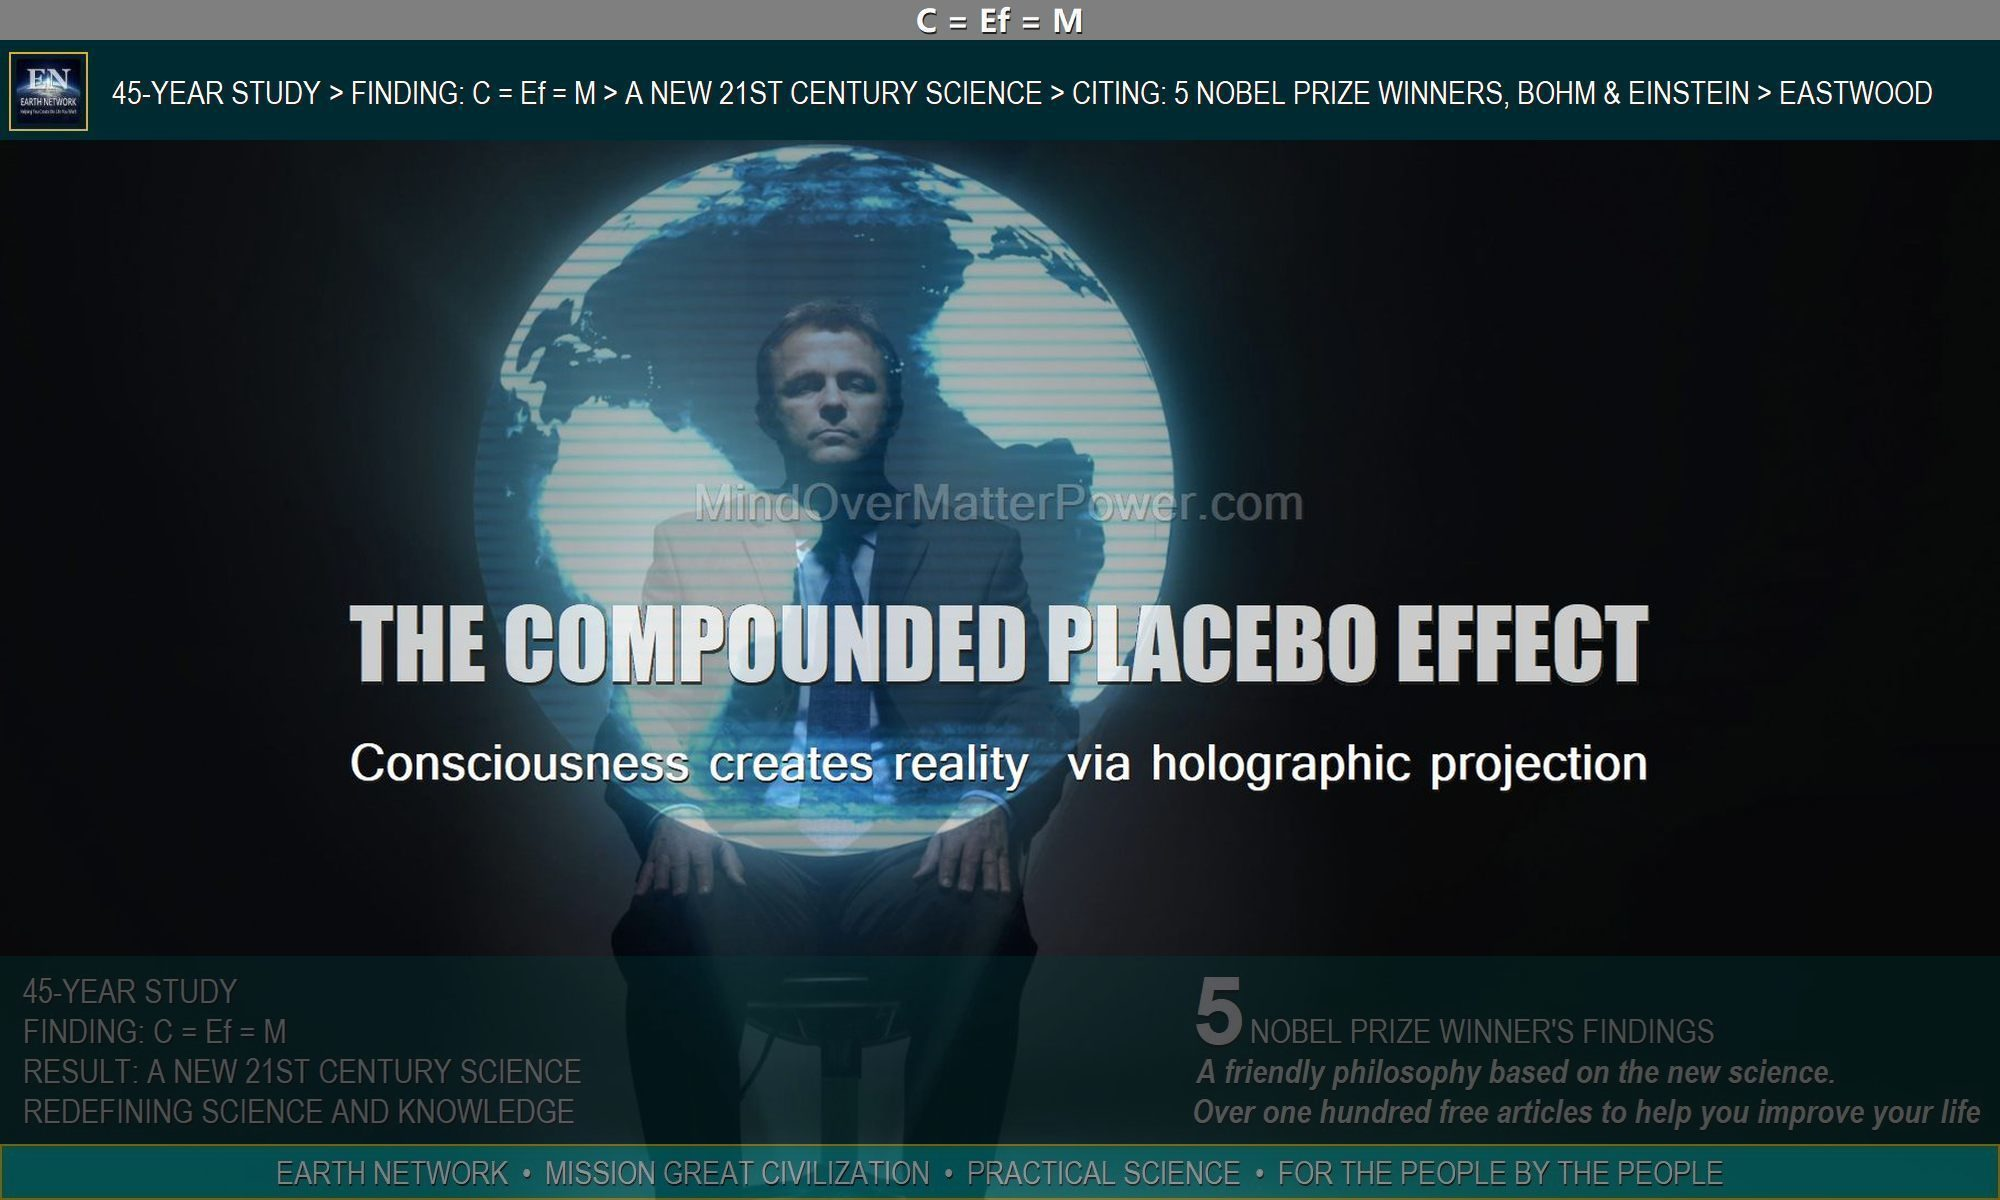 Hologram man is in depicts the compounded placebo effect of thoughts and emotions. Alternative metaphysical mind body healing what is the nocebo?